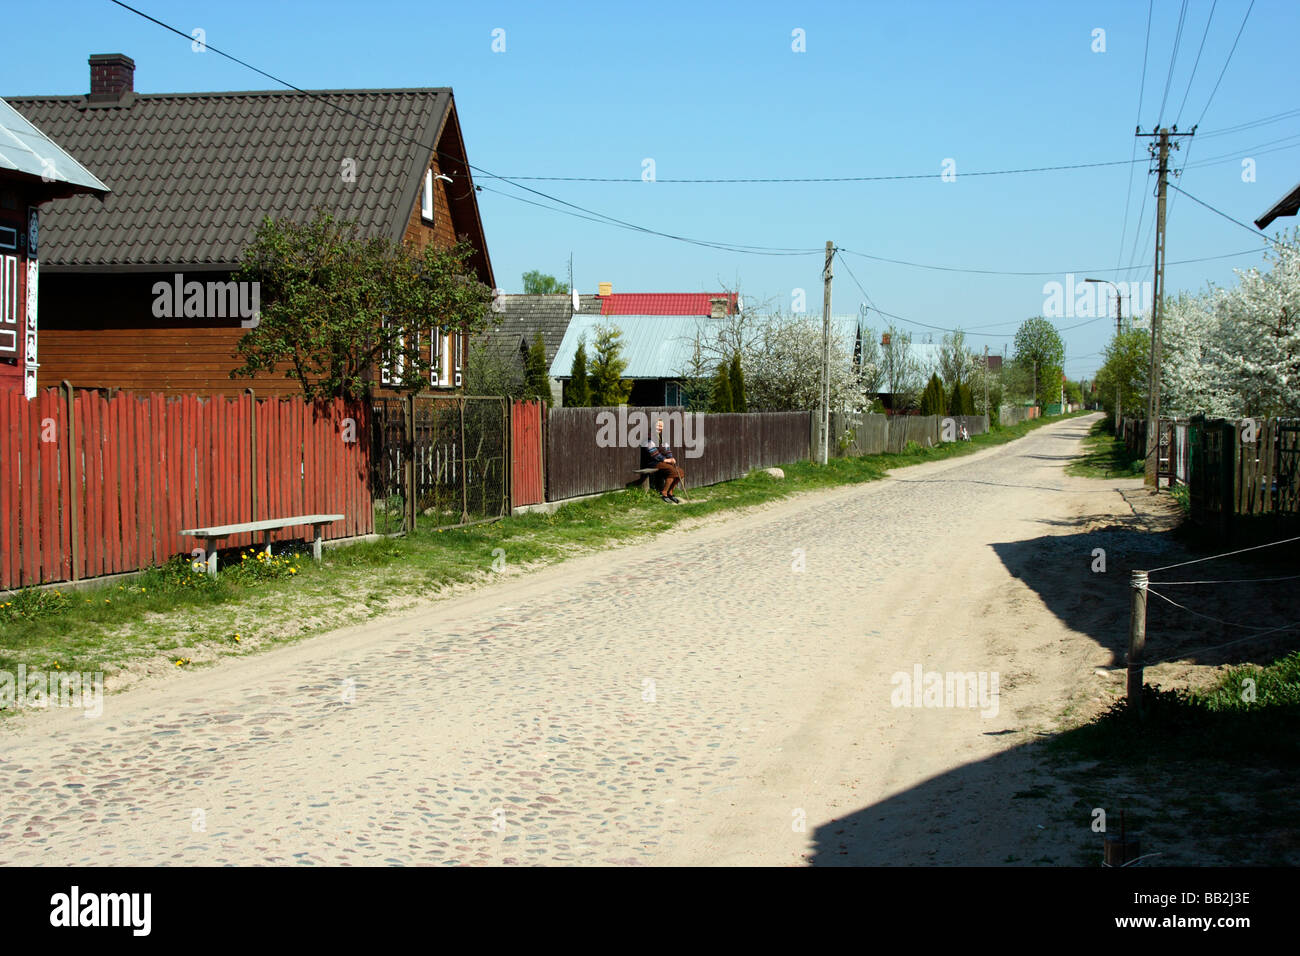 An old woman sitting on a bench in Soce village, Poland - Stock Image